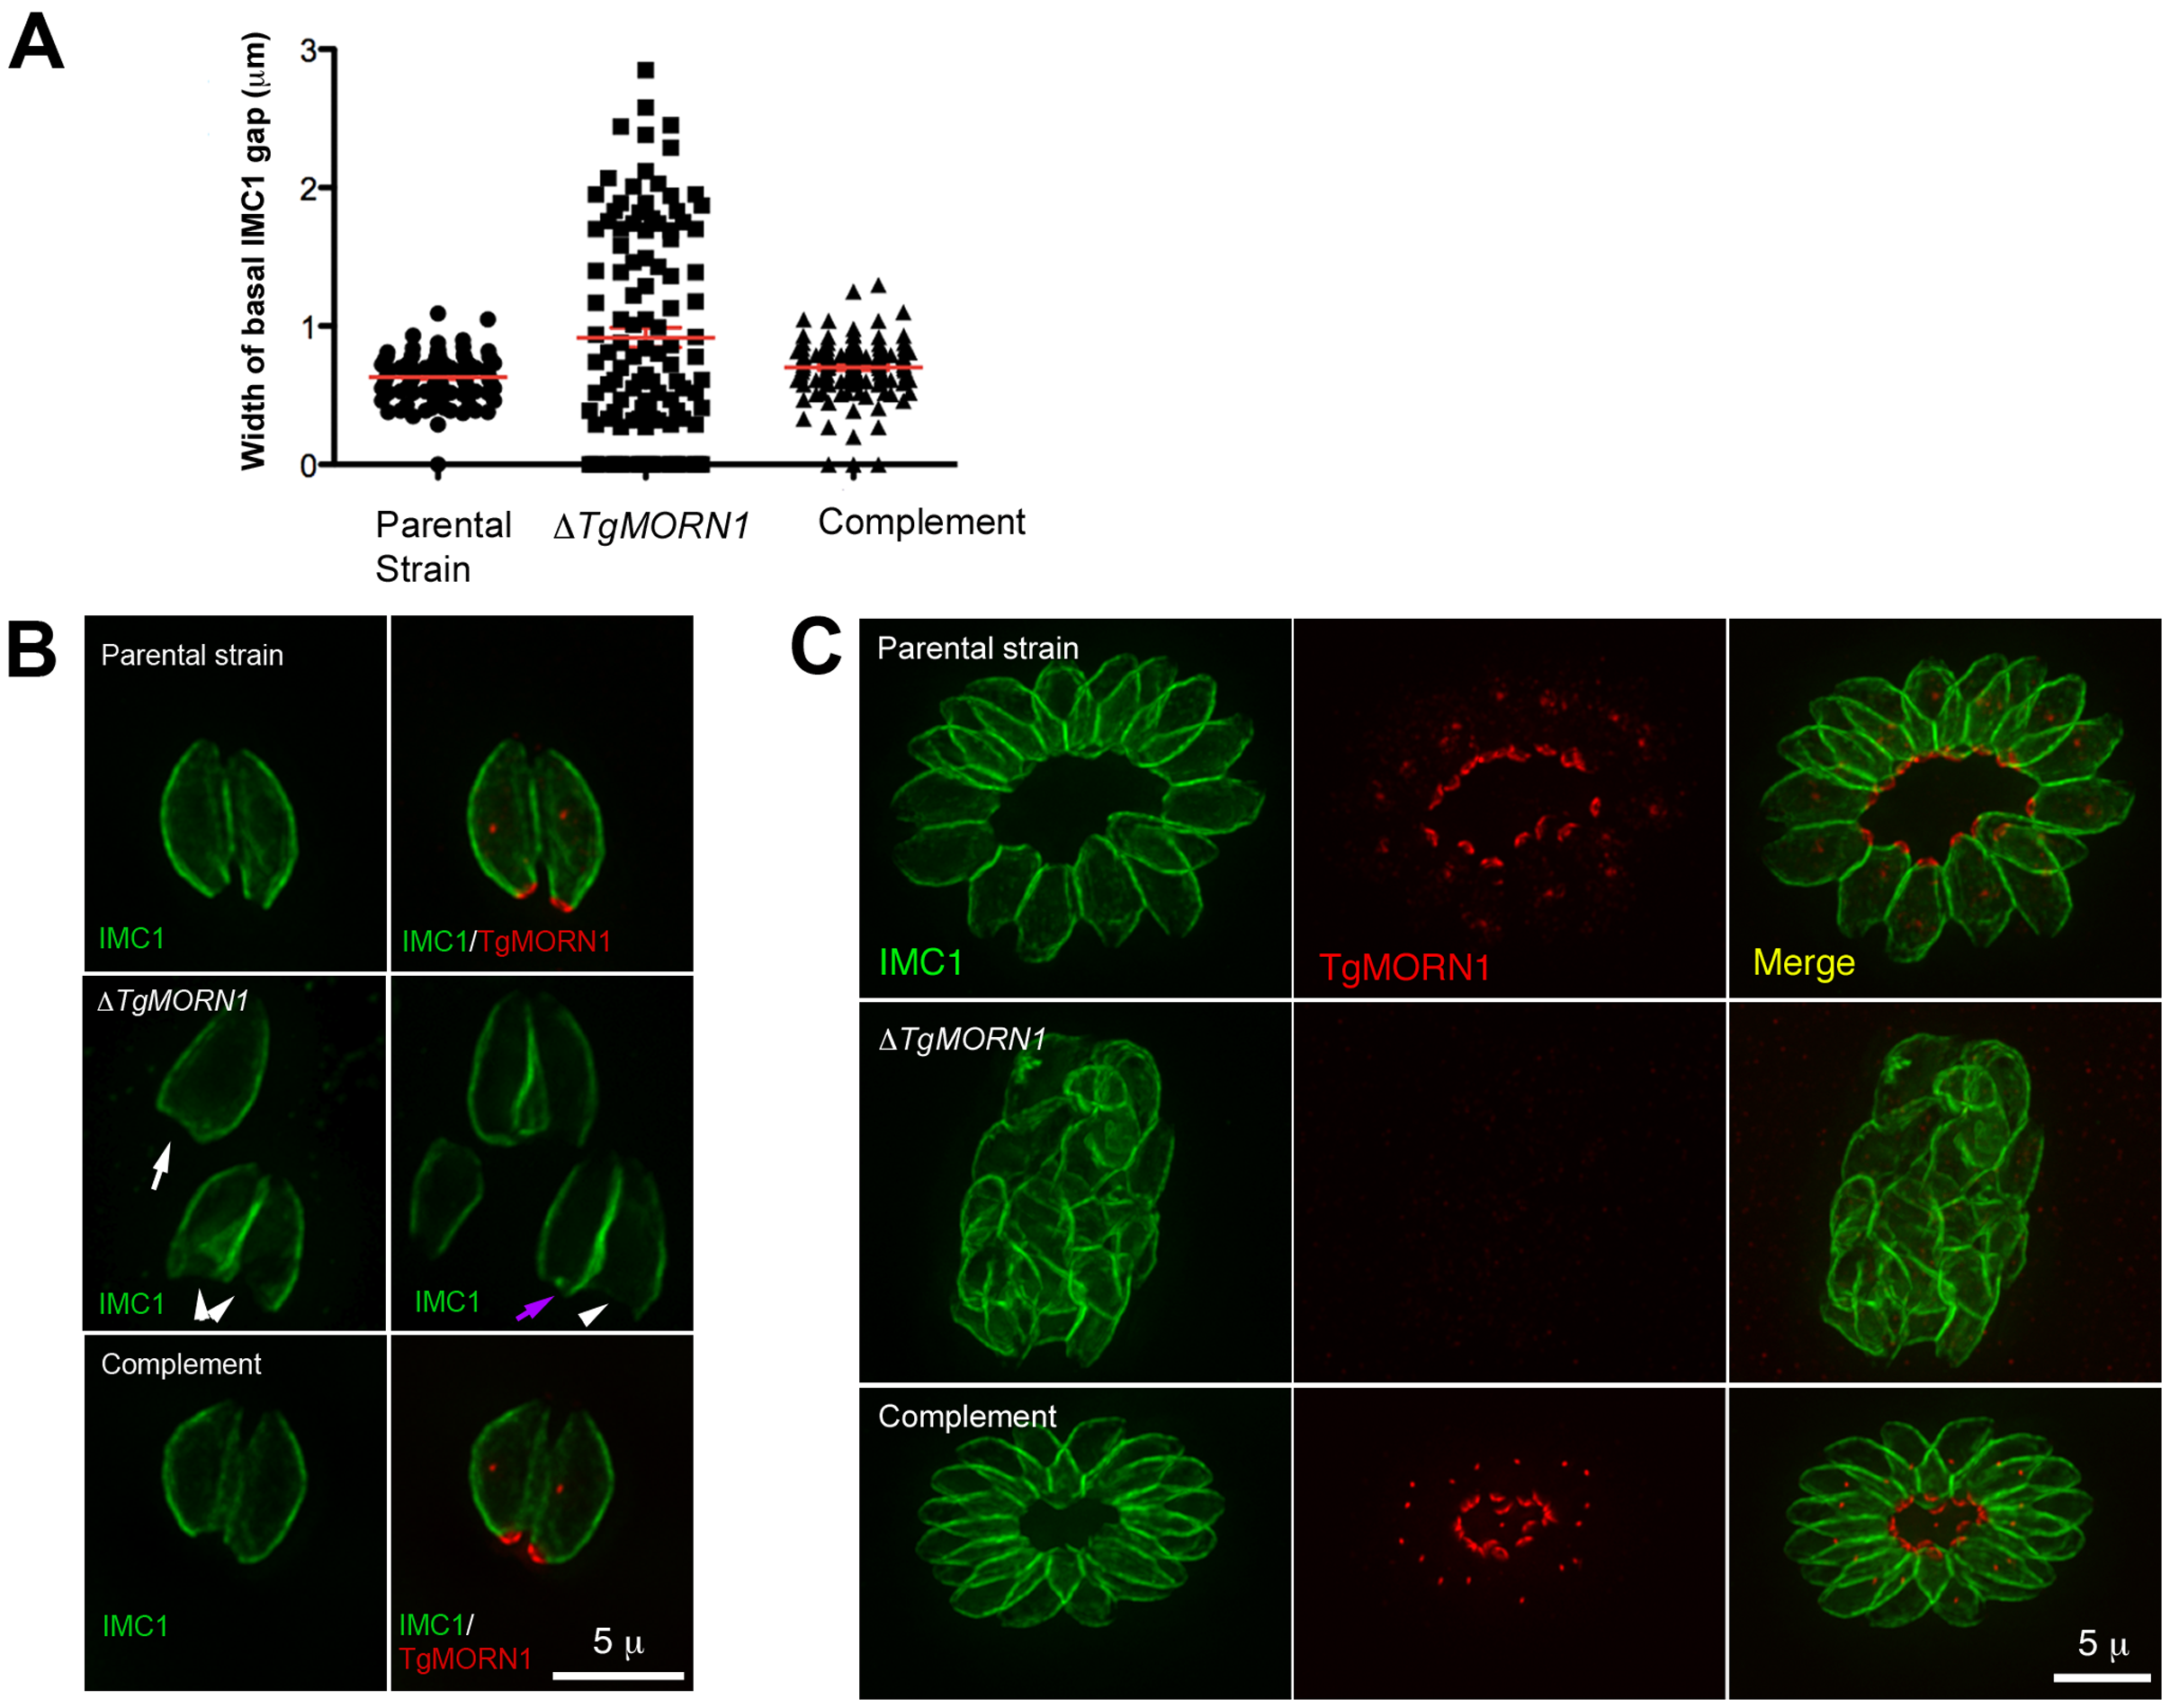 The loss of TgMORN1 affects the organization of the parasite posterior end.